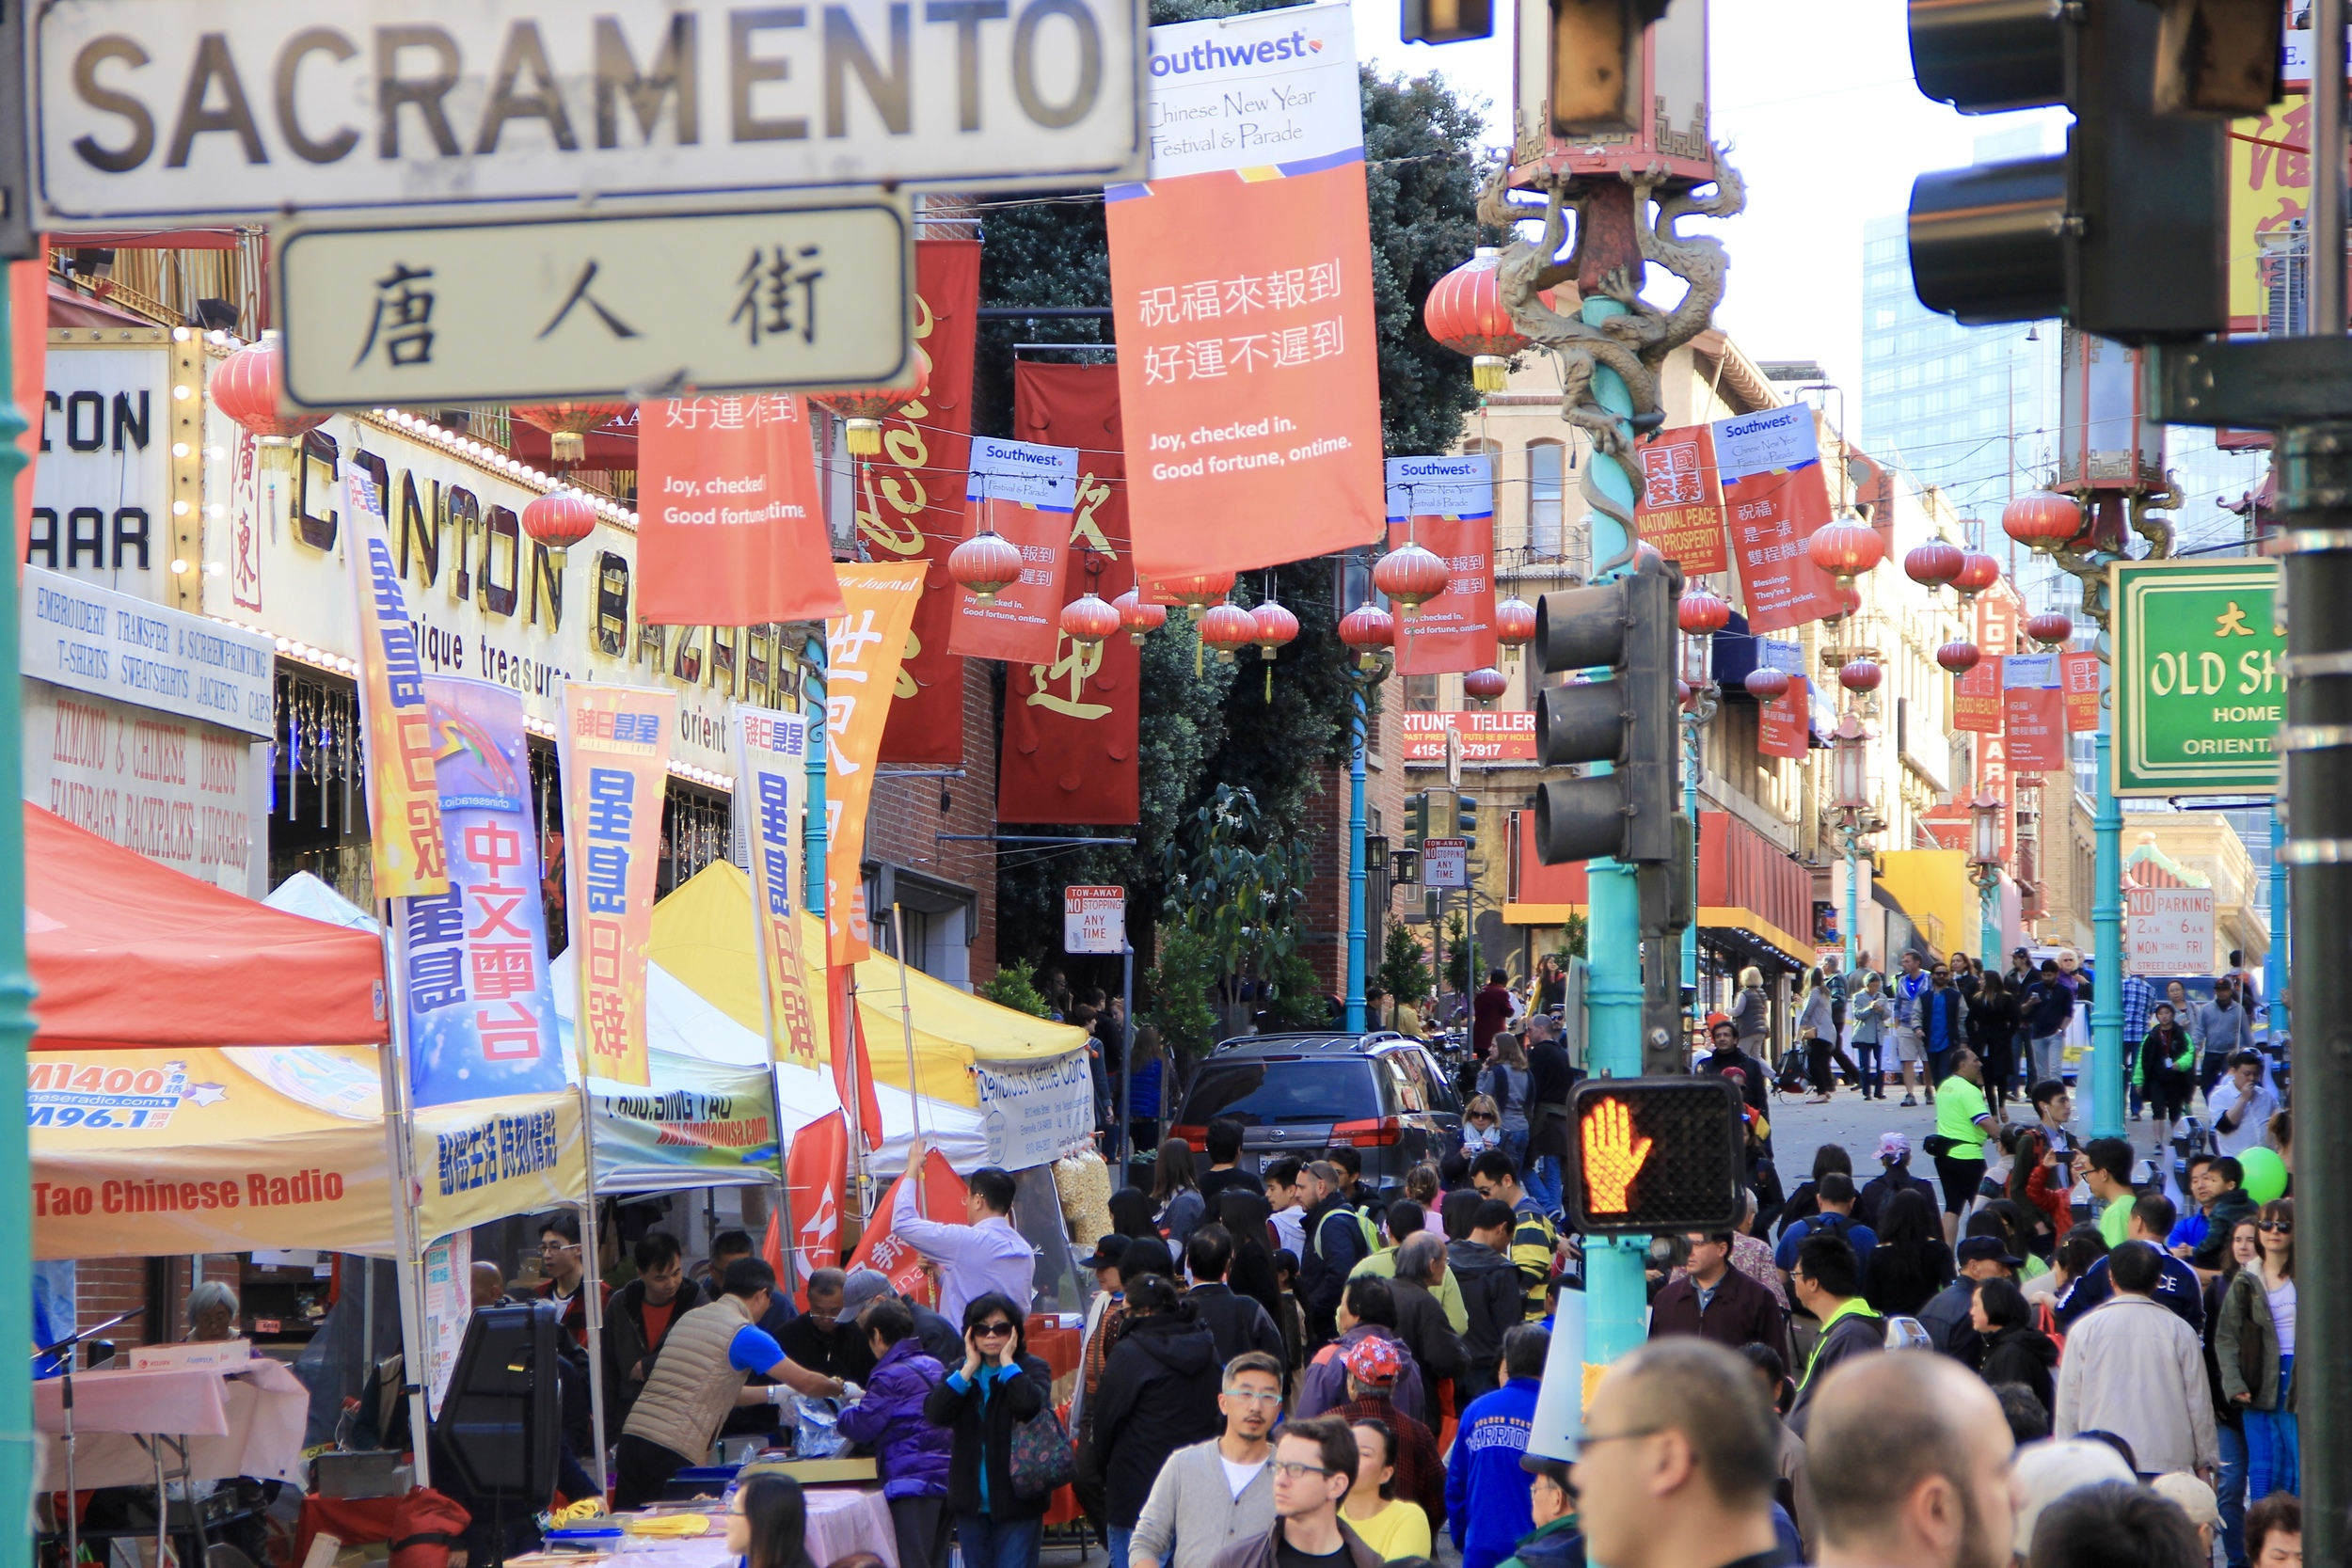 the streets buzzed with people and color during the Spring Festival